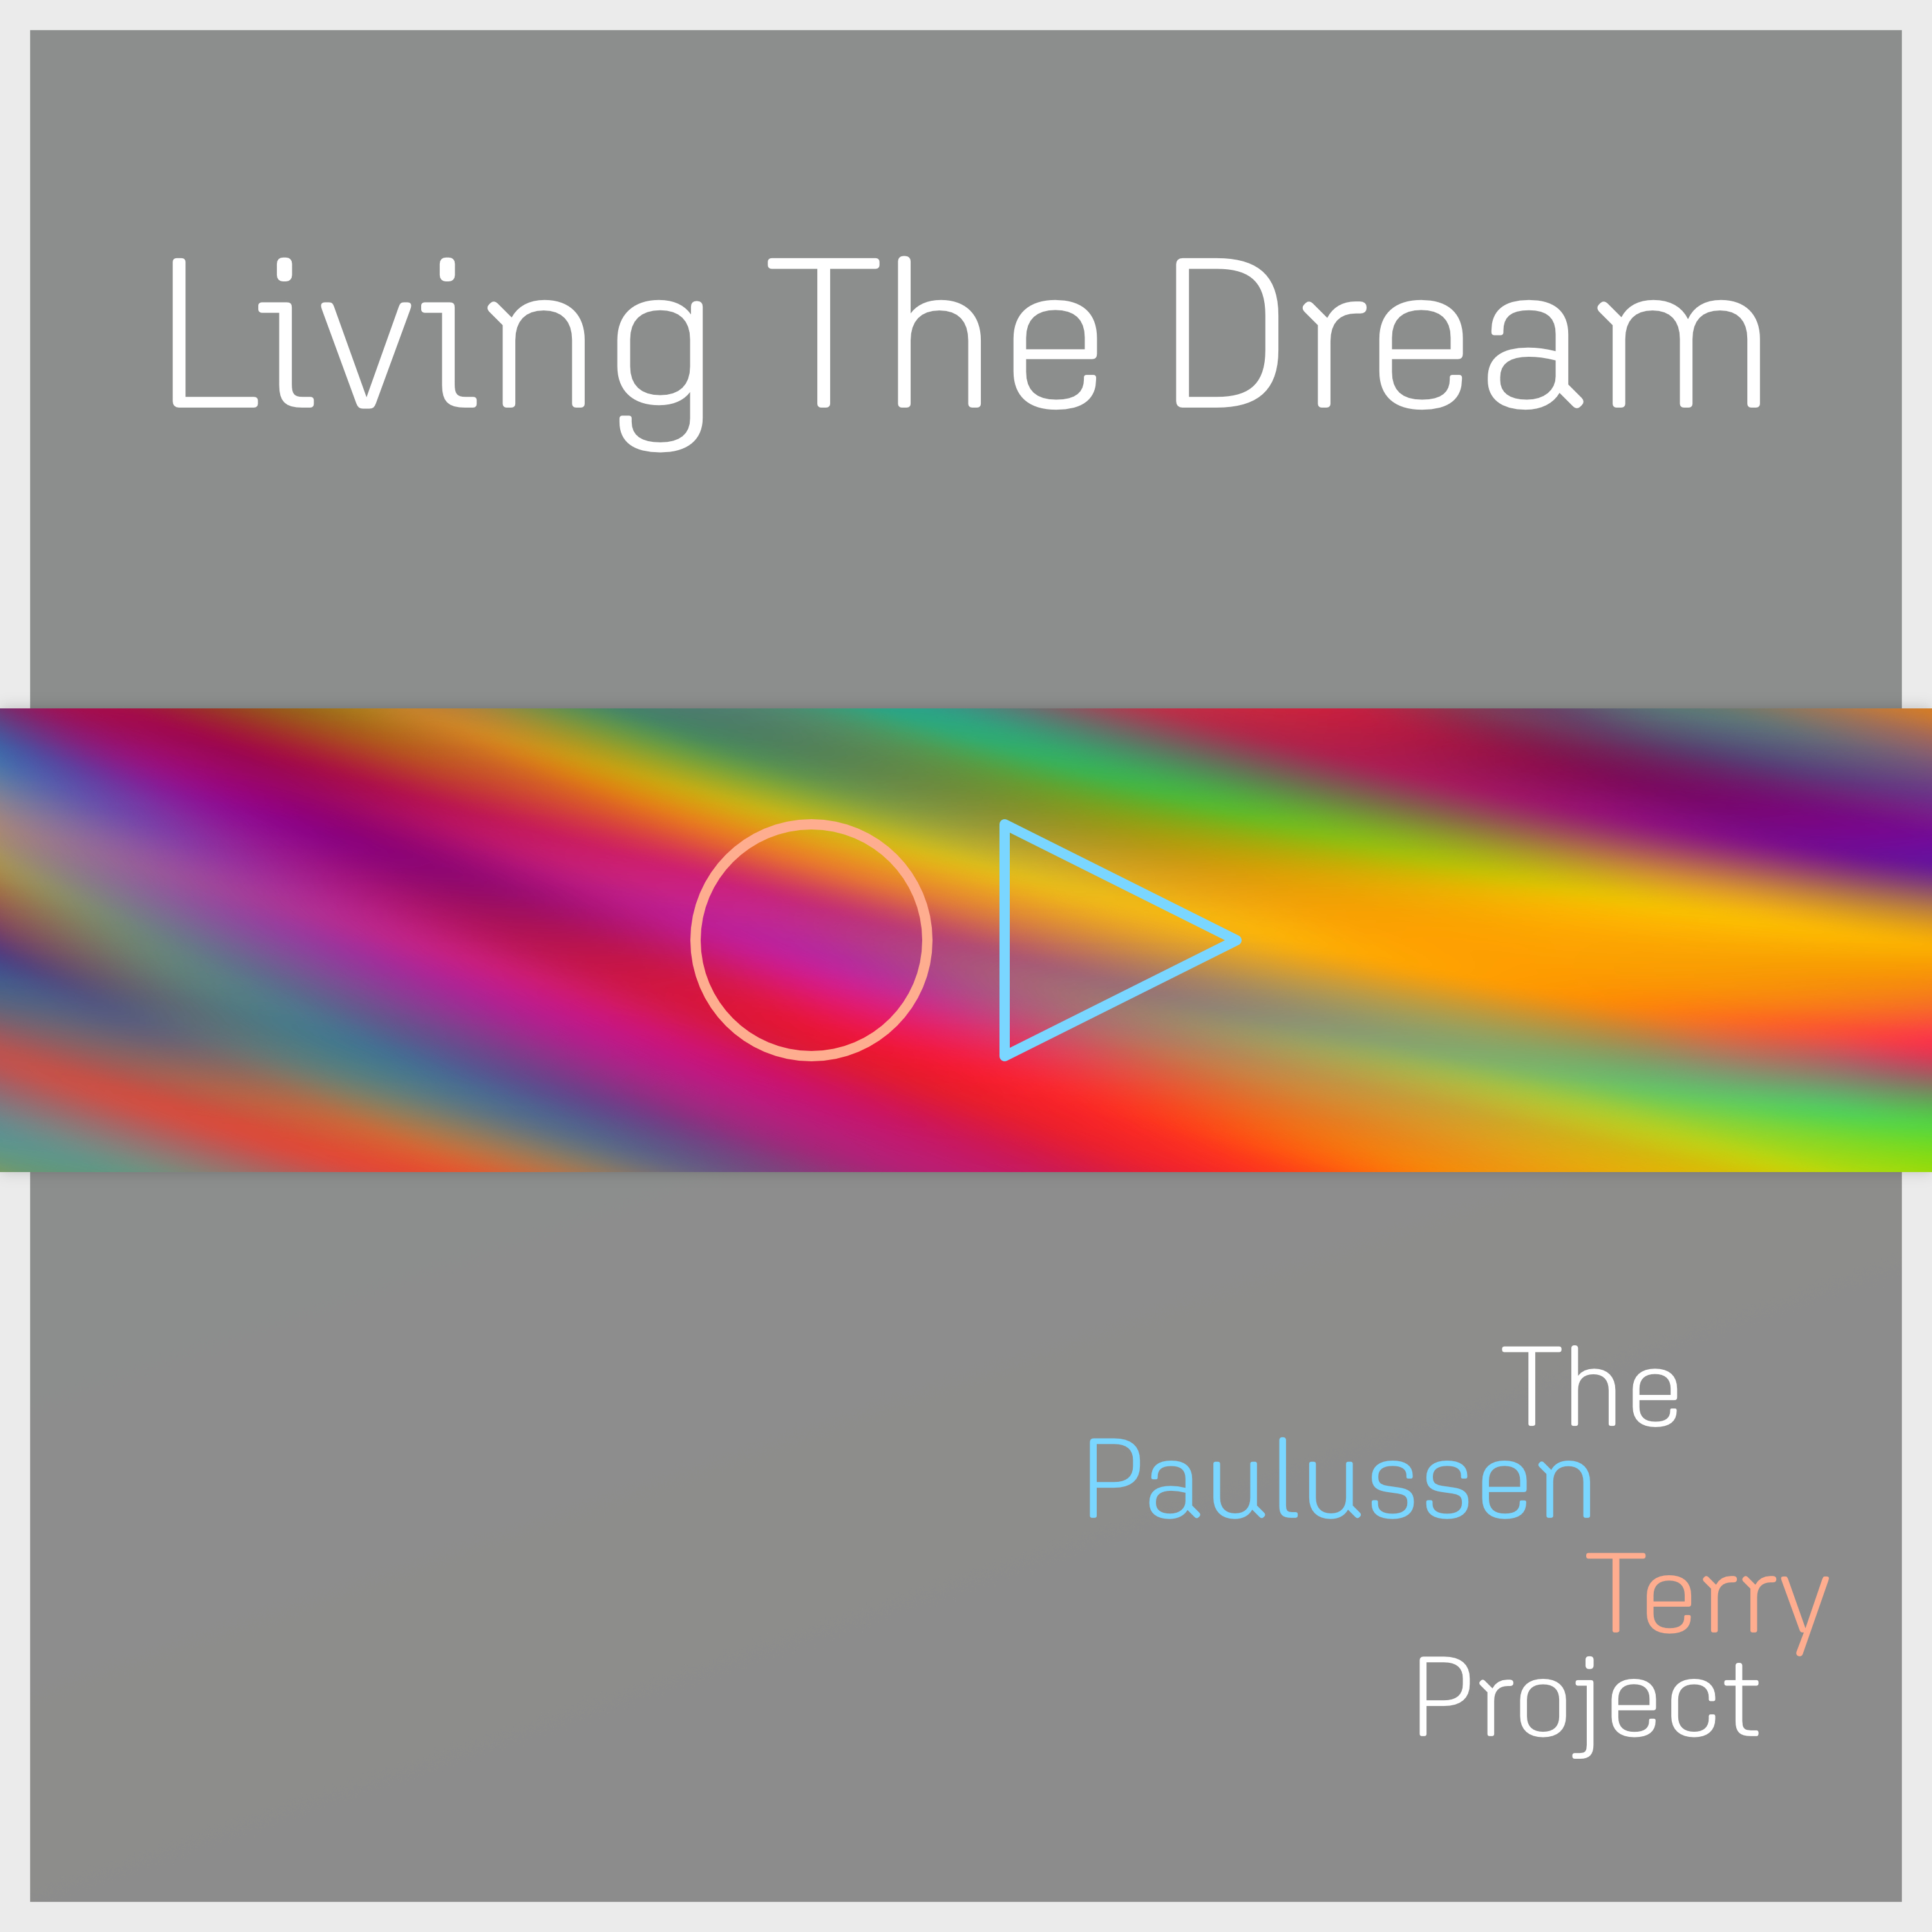 Living the Dream, The Paulussen Terry Project